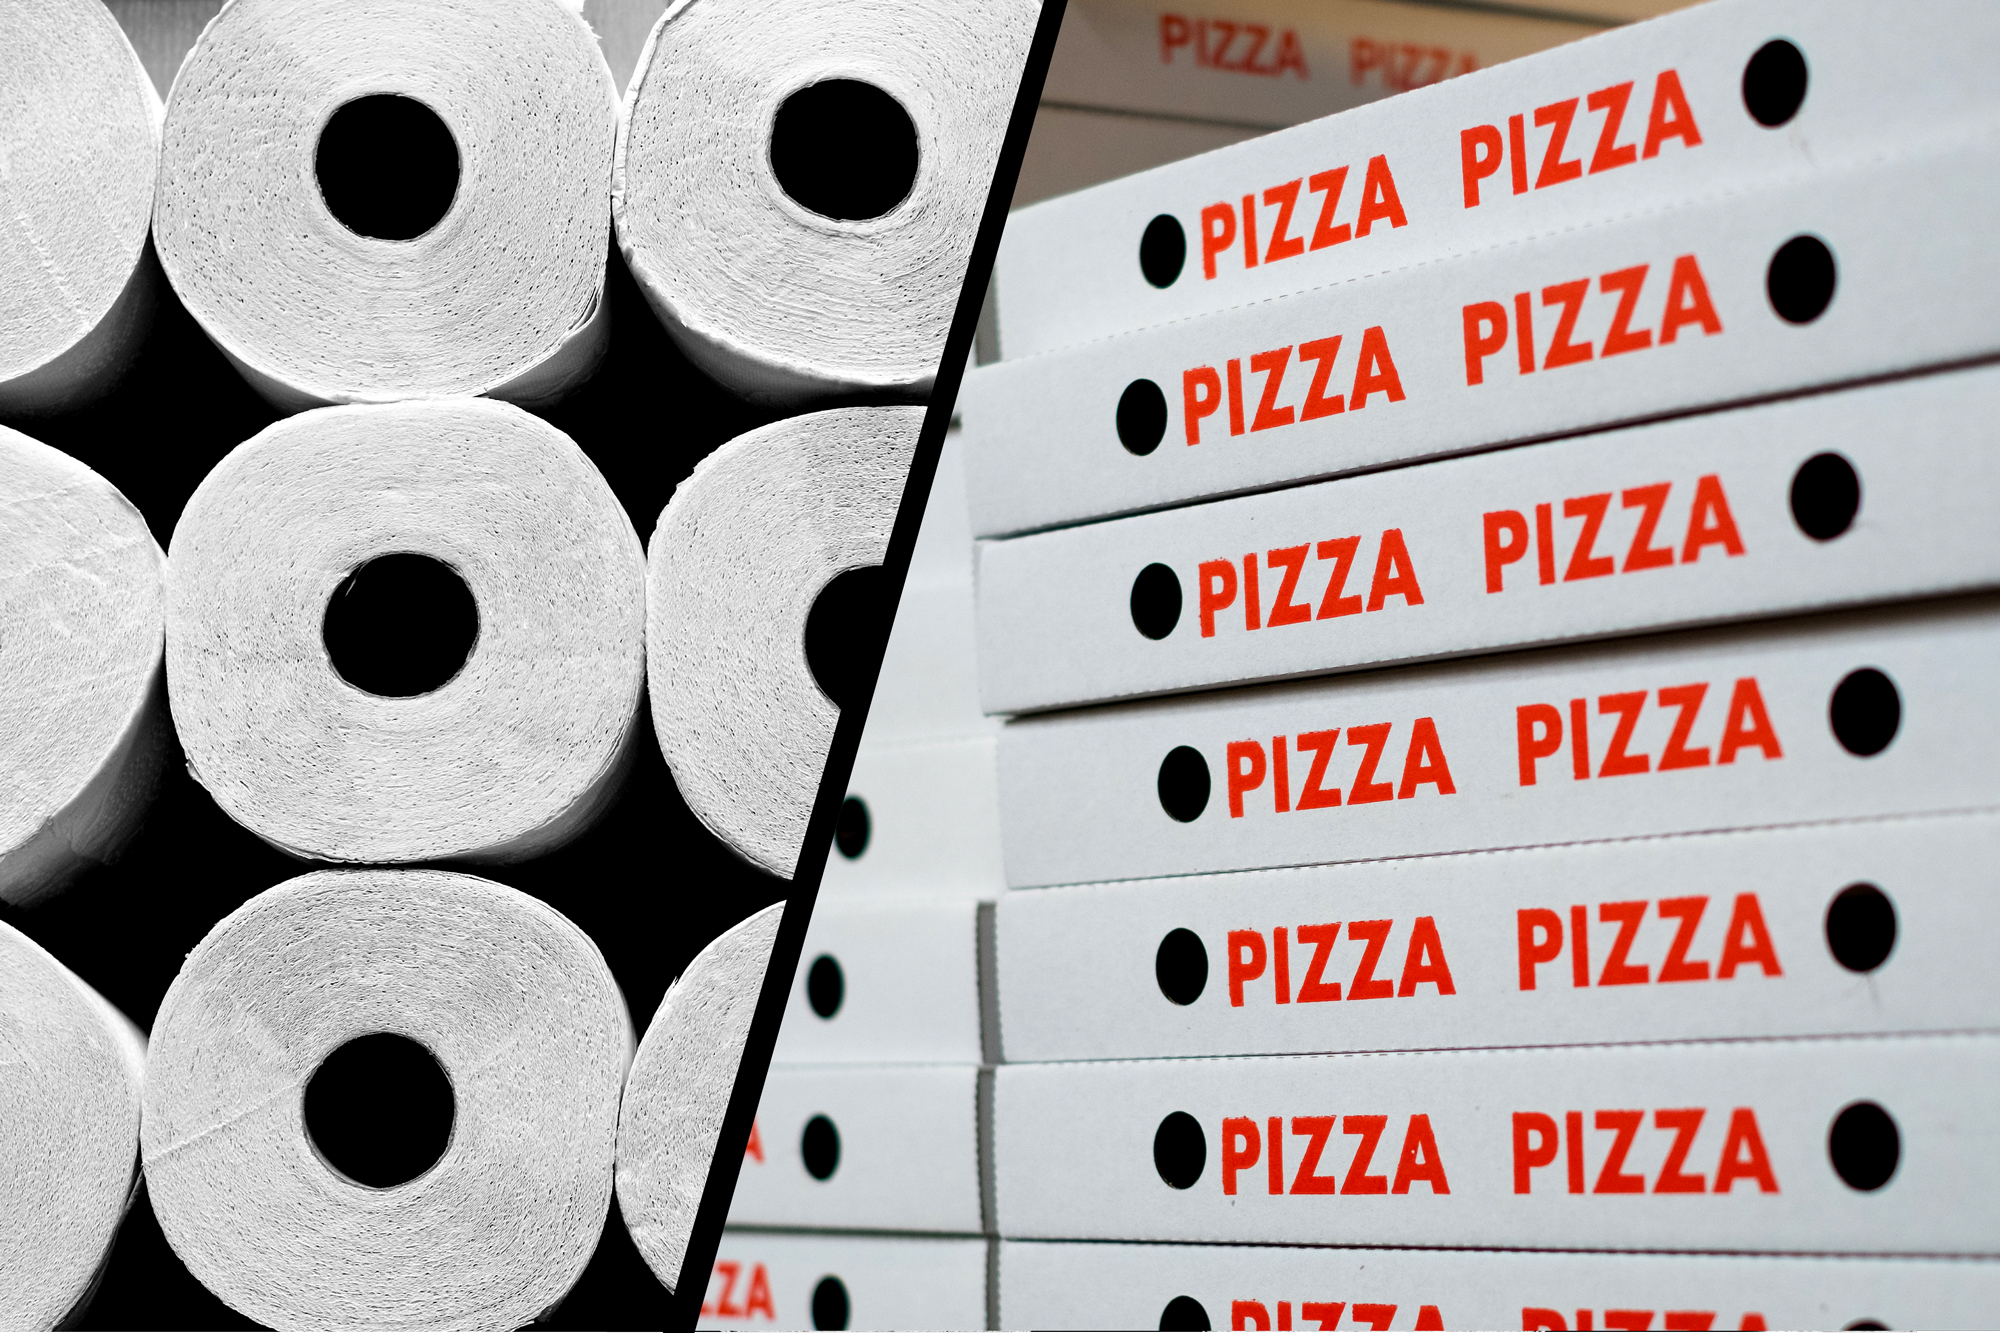 Wisconsin Pizza Restaurant Delivers Toilet Paper During Shortage